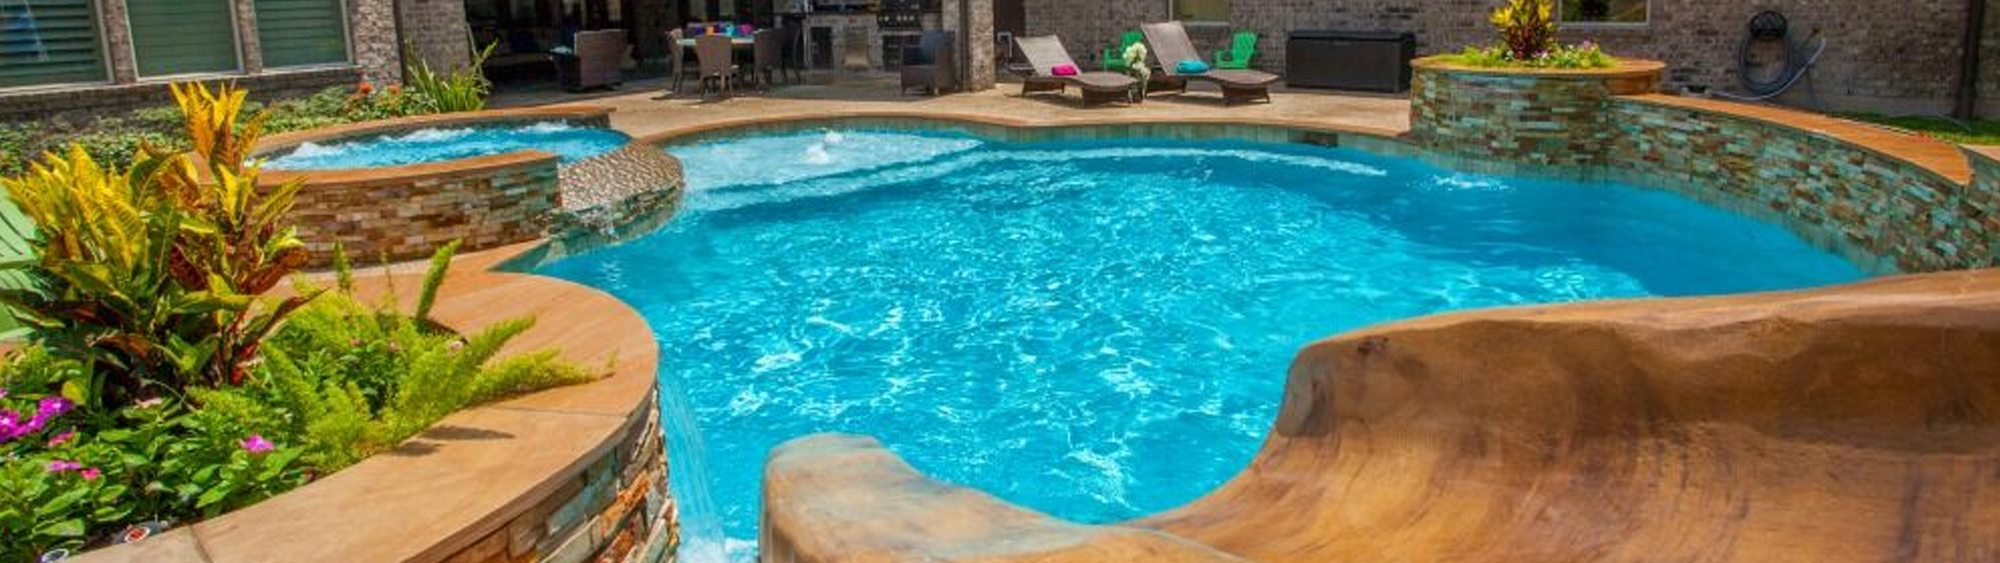 Custom swimming pools houston home richard 39 s total backyard solutions for Swimming pool refurbishment costs